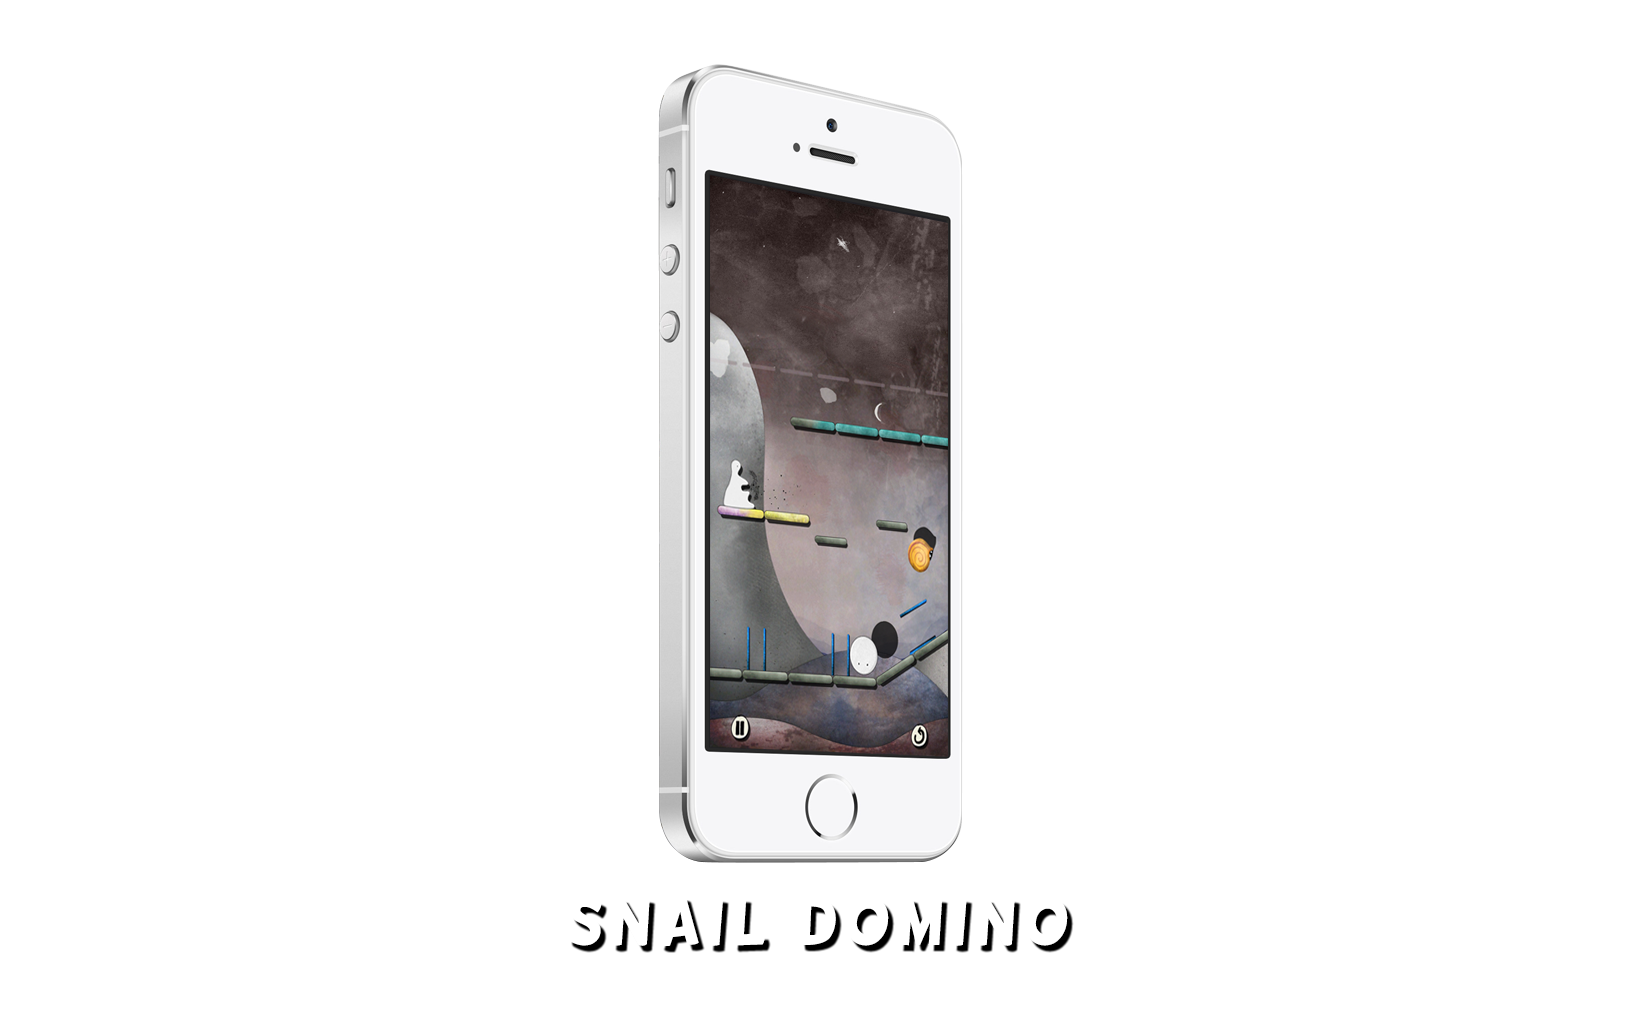 Snail Domino on Iphone